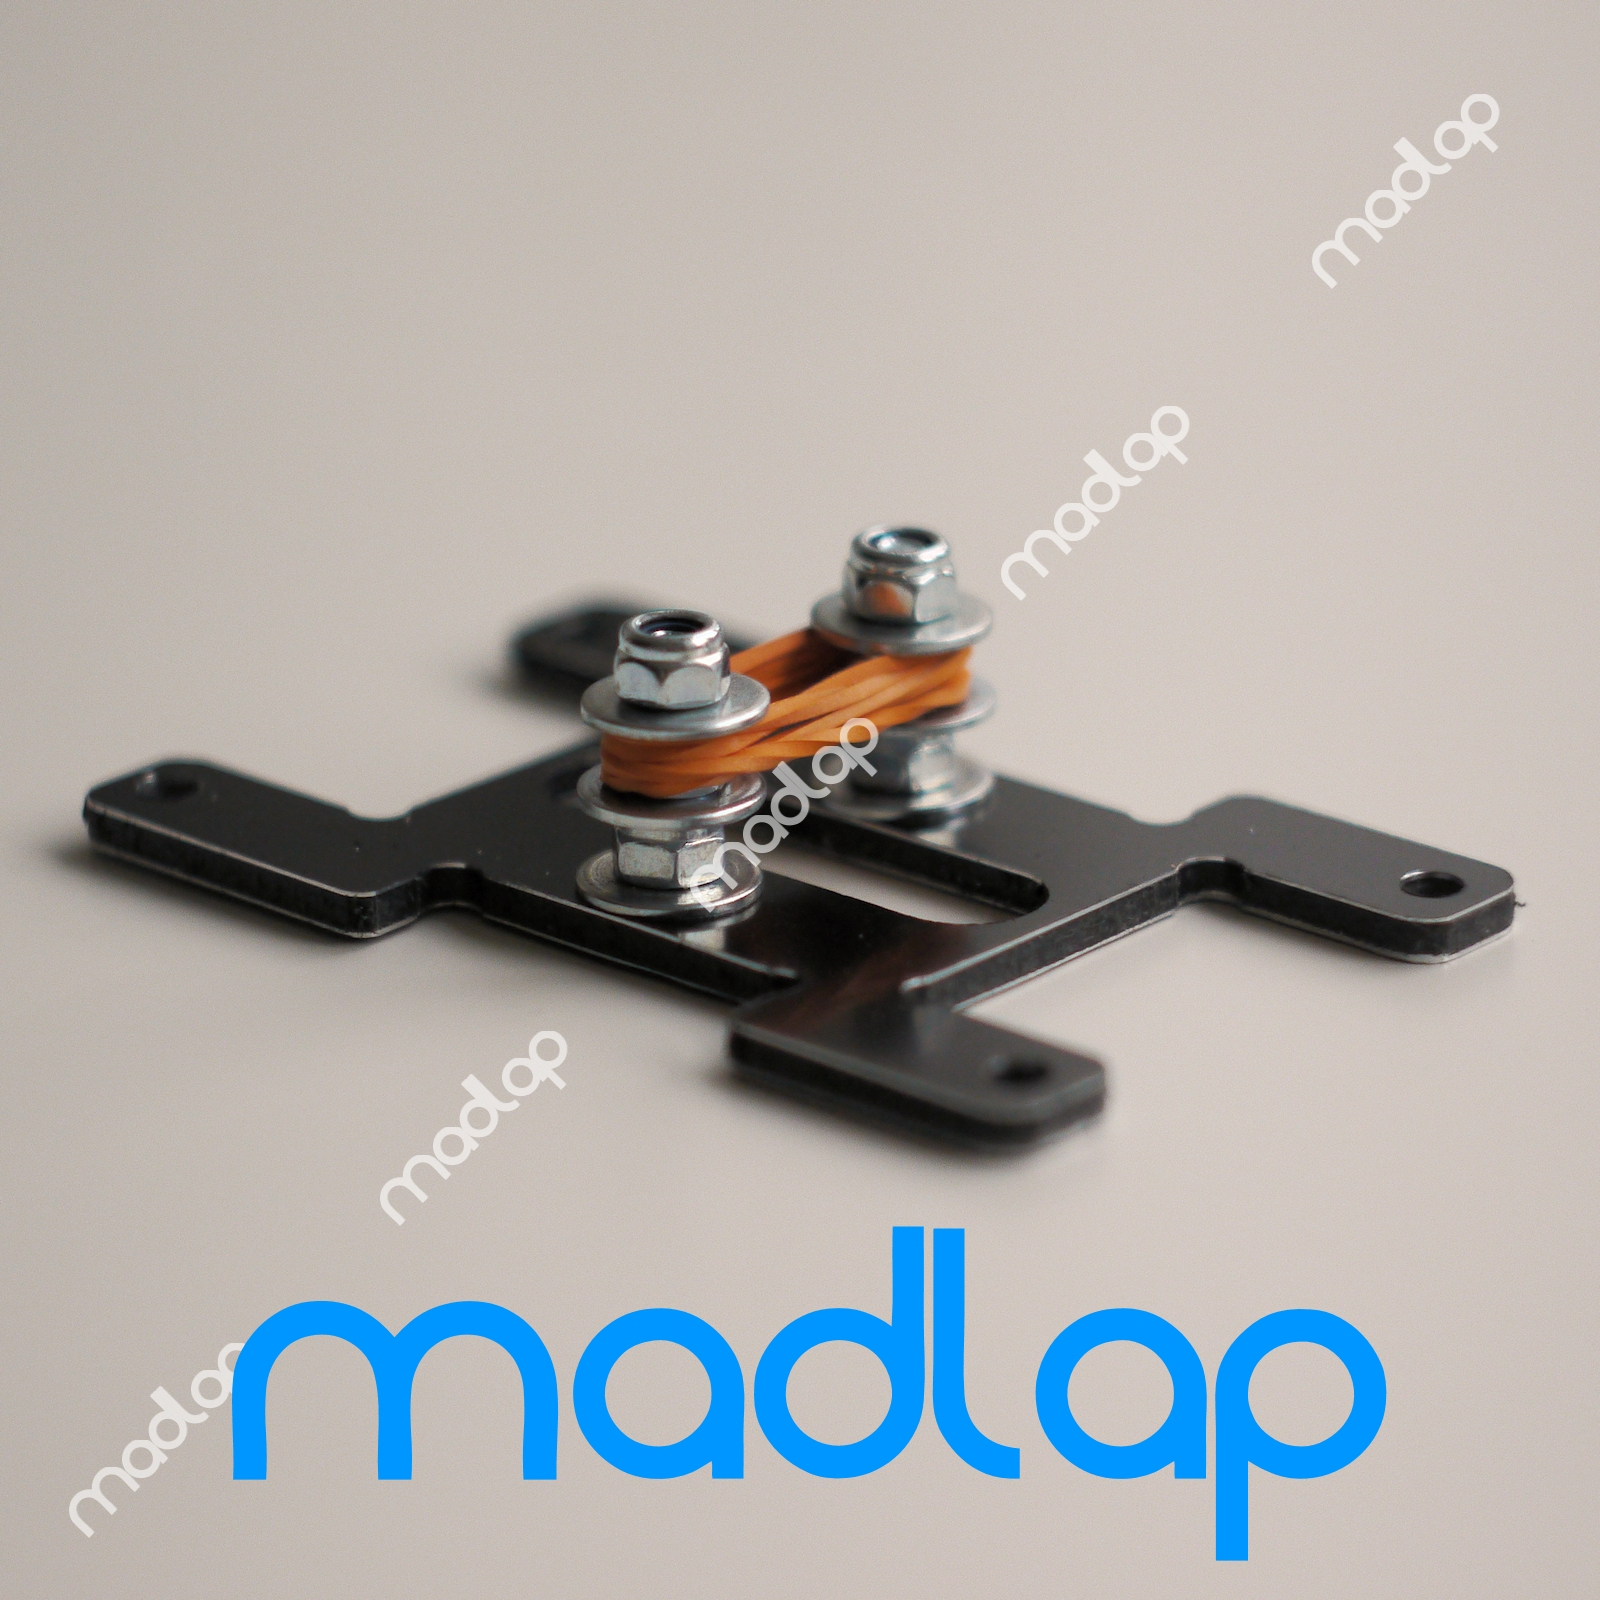 Details about Sequential Adapter for Logitech G27 / G29 / G920 Gear Shifter  Adapter